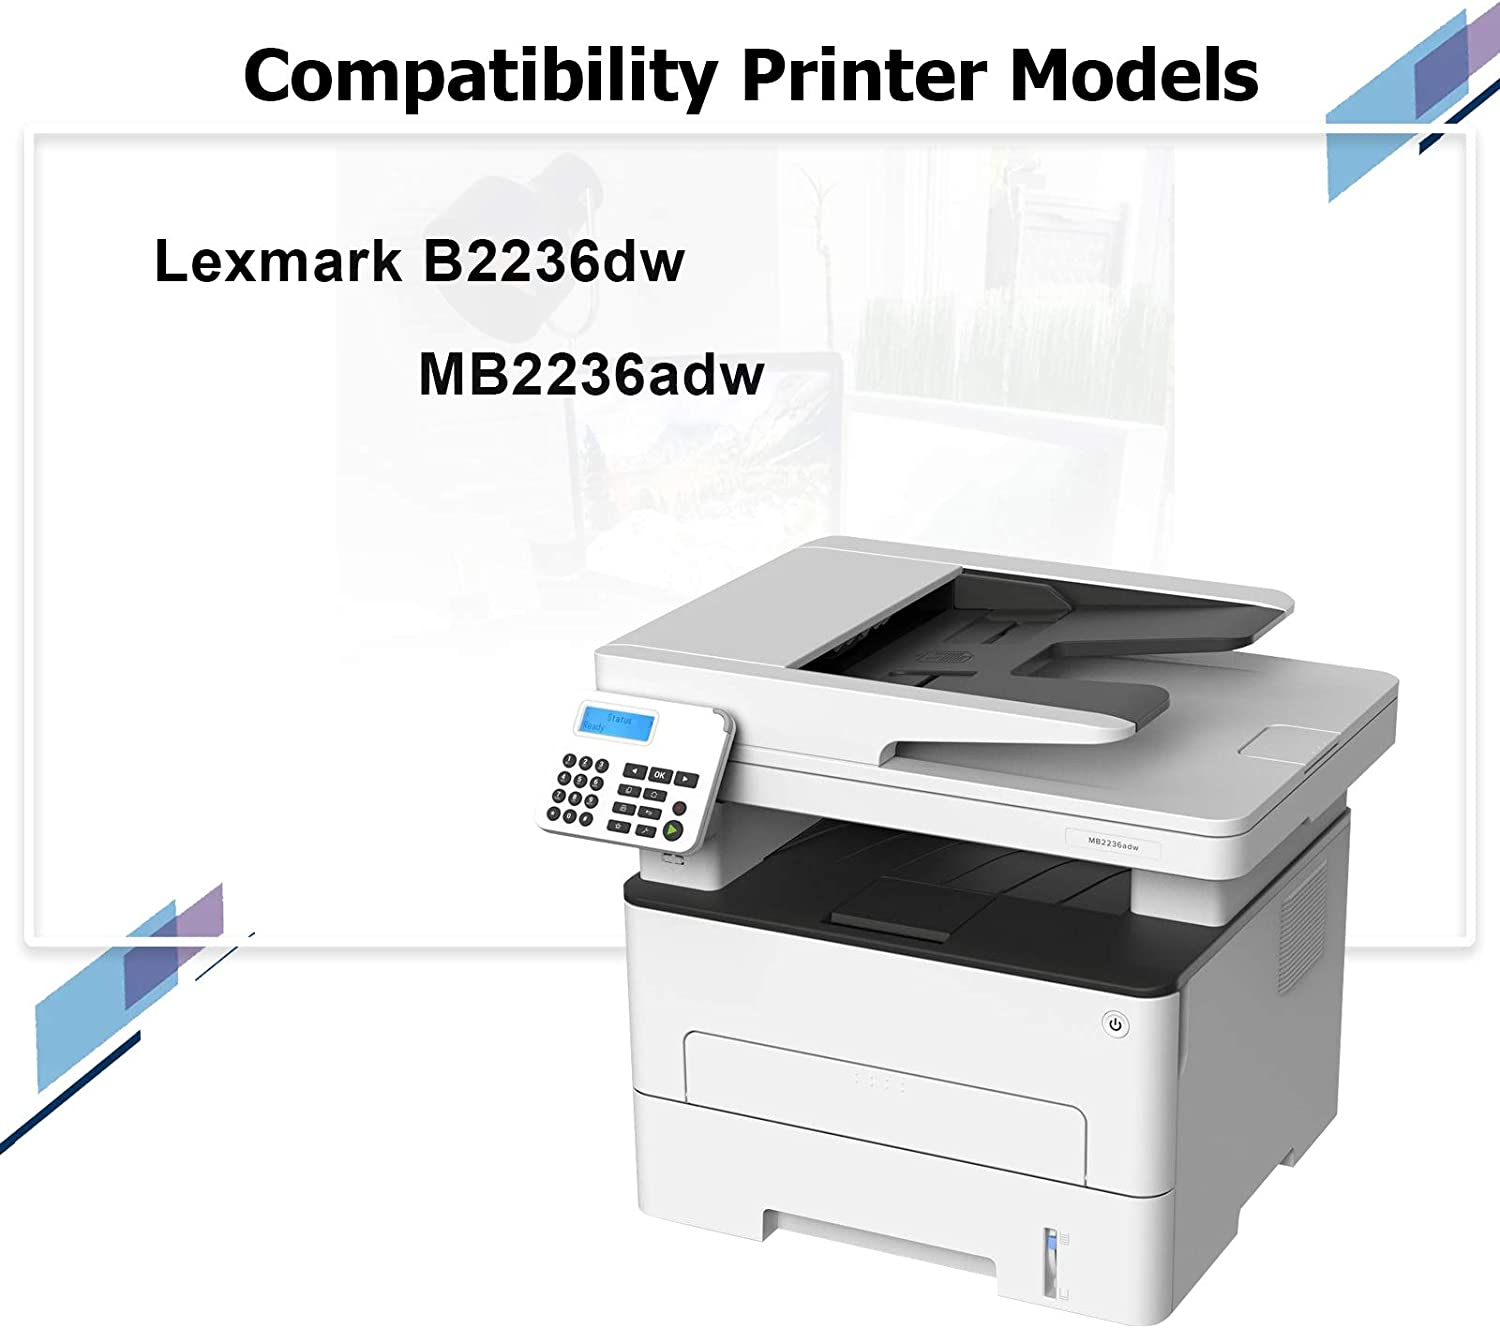 1 Pack Black Remanufactured B220Z00 Imaging Unit Replacement for Lexmark MB2236adw B2236dw Printers,Sold by Thurink.